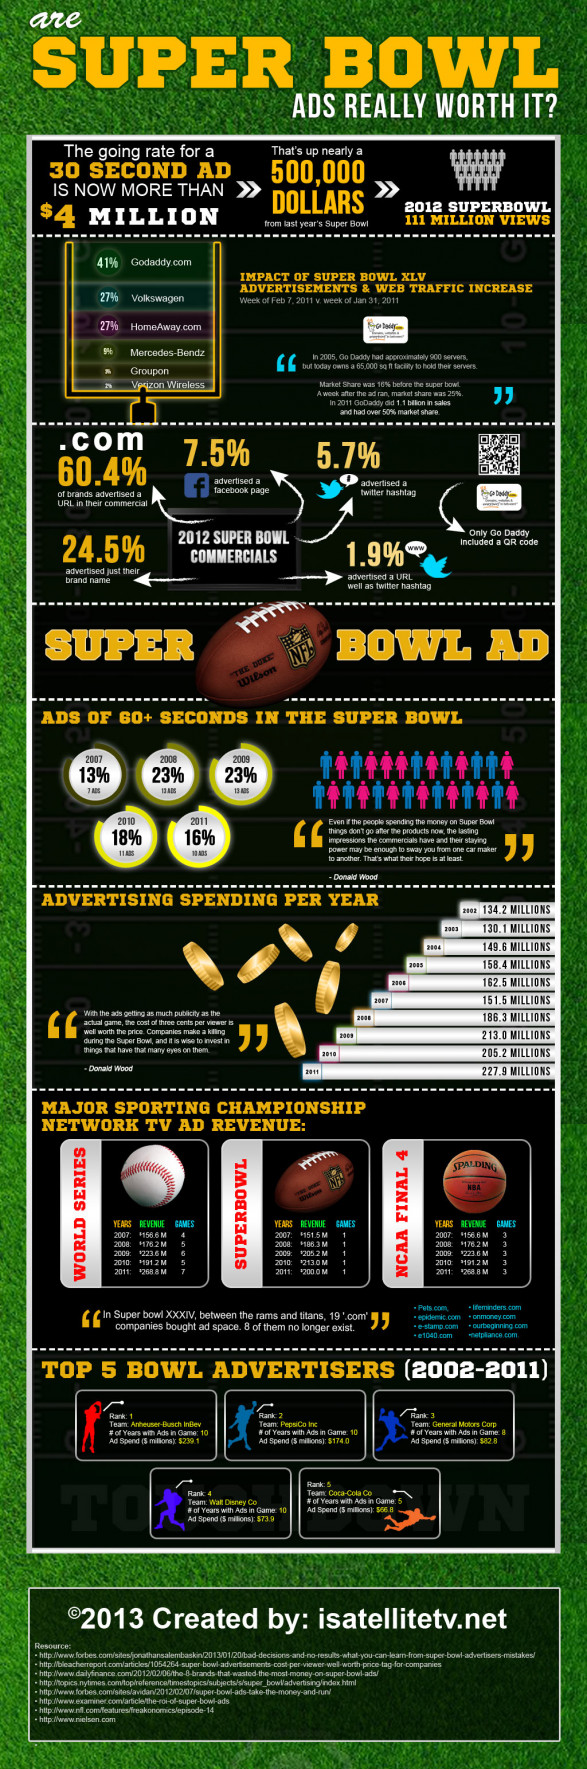 Are Super Bowl Ads Really Worth it?